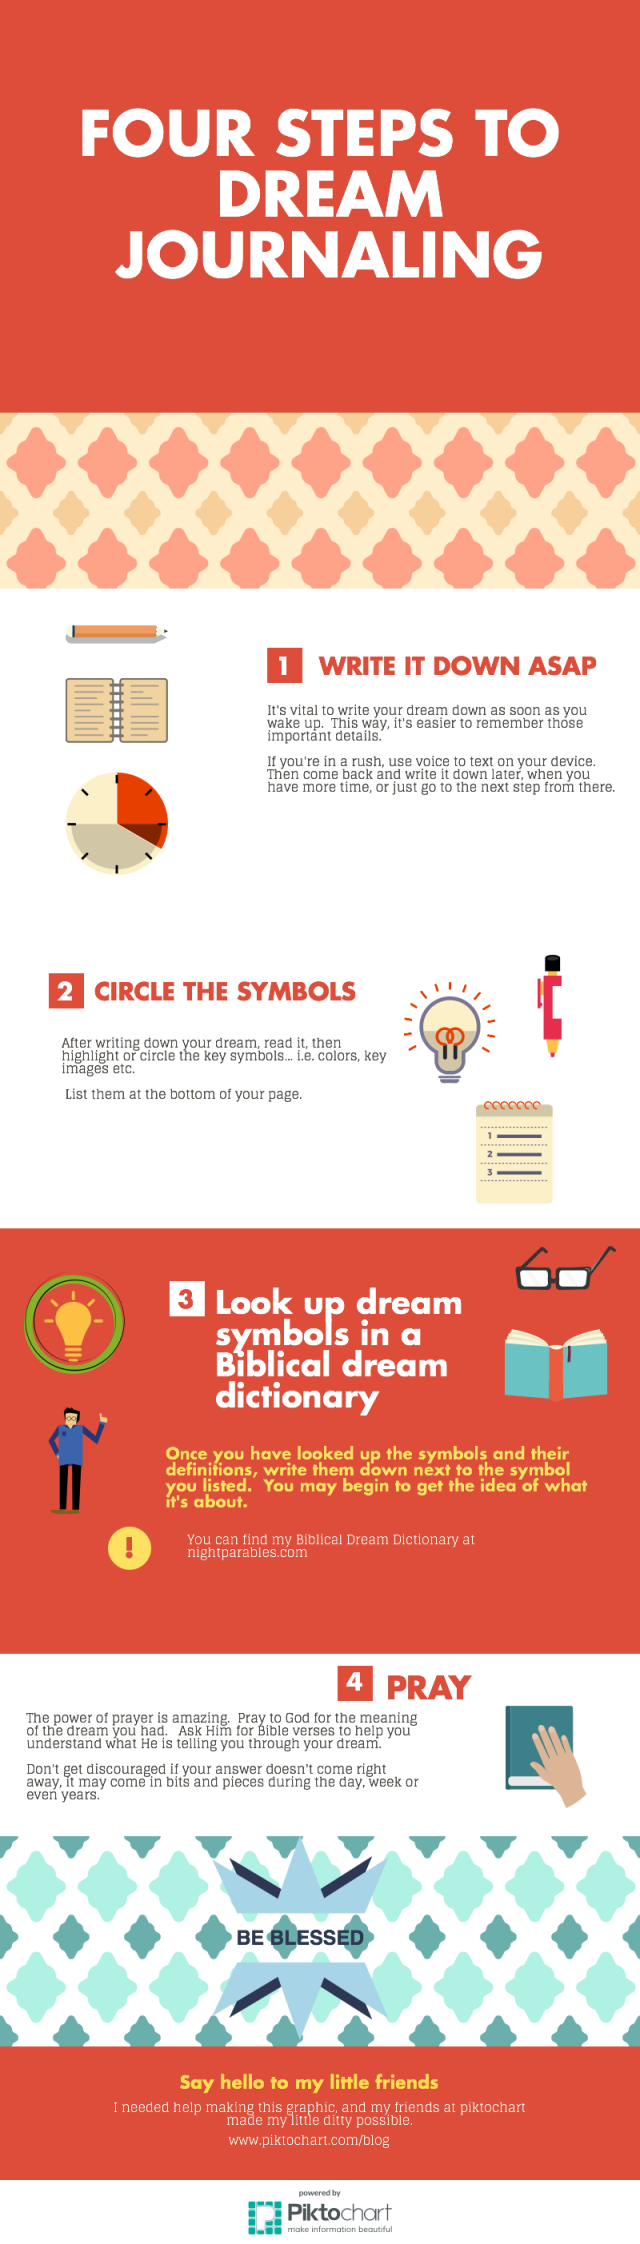 four-steps-to-dream-journaling